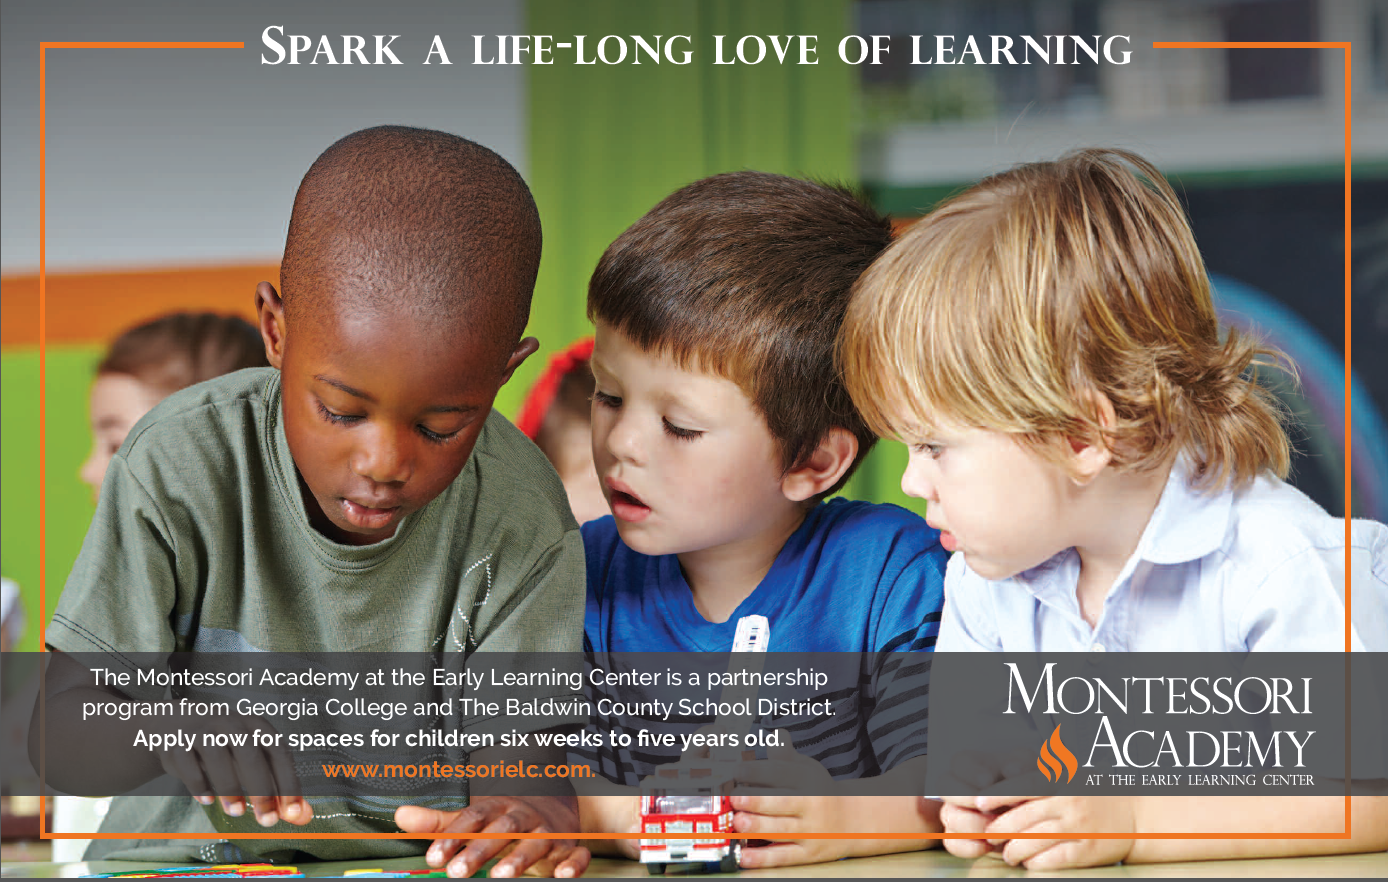 Montessori Academy at the Early Learning Center